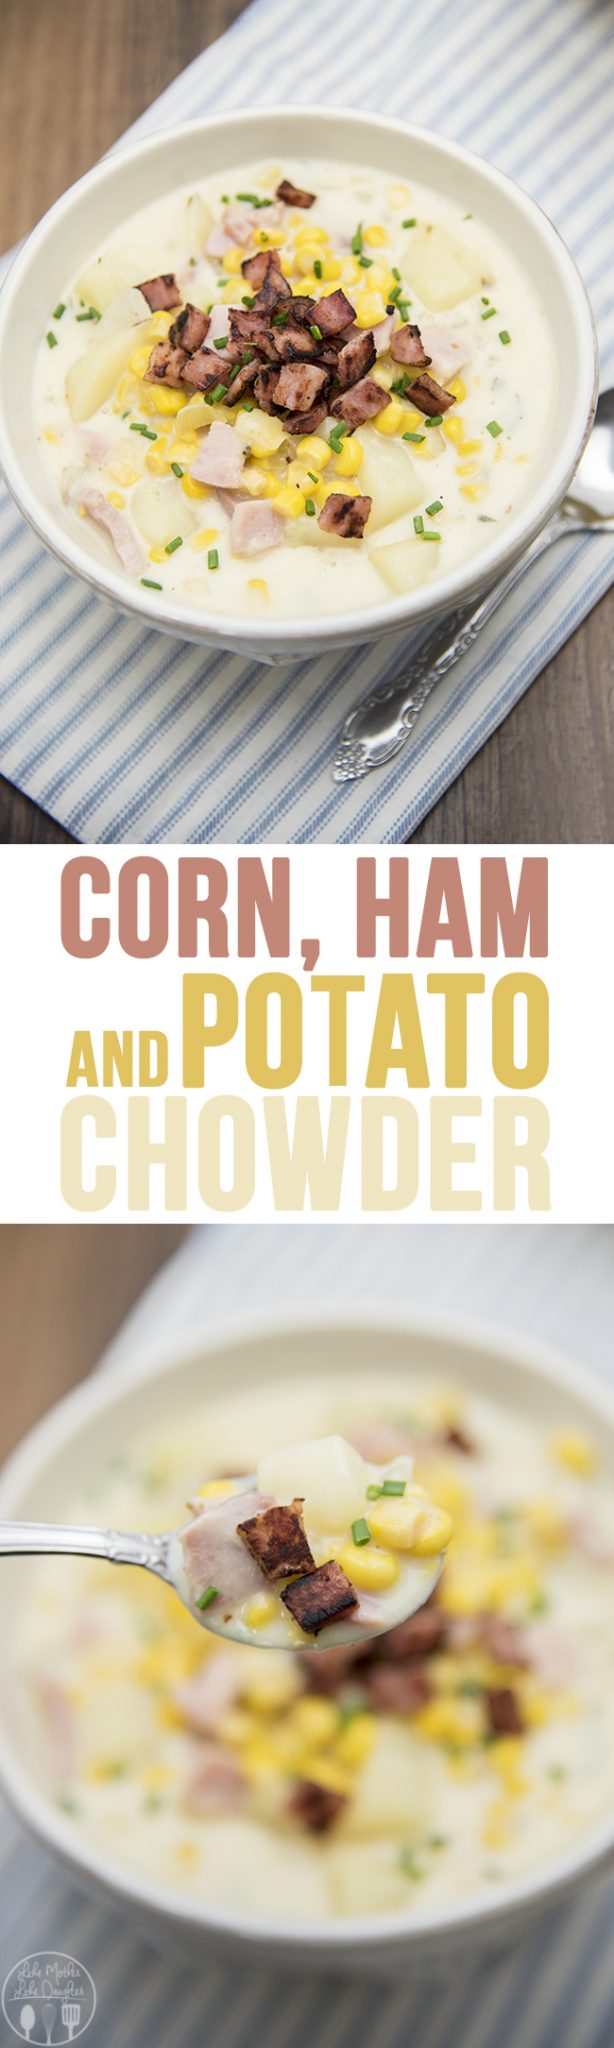 Corn, Ham and Potato Chowder - This creamy and hearty chowder is so delicious, and perfect for this cooler weather! It'll quickly become your new favorite soup this season!